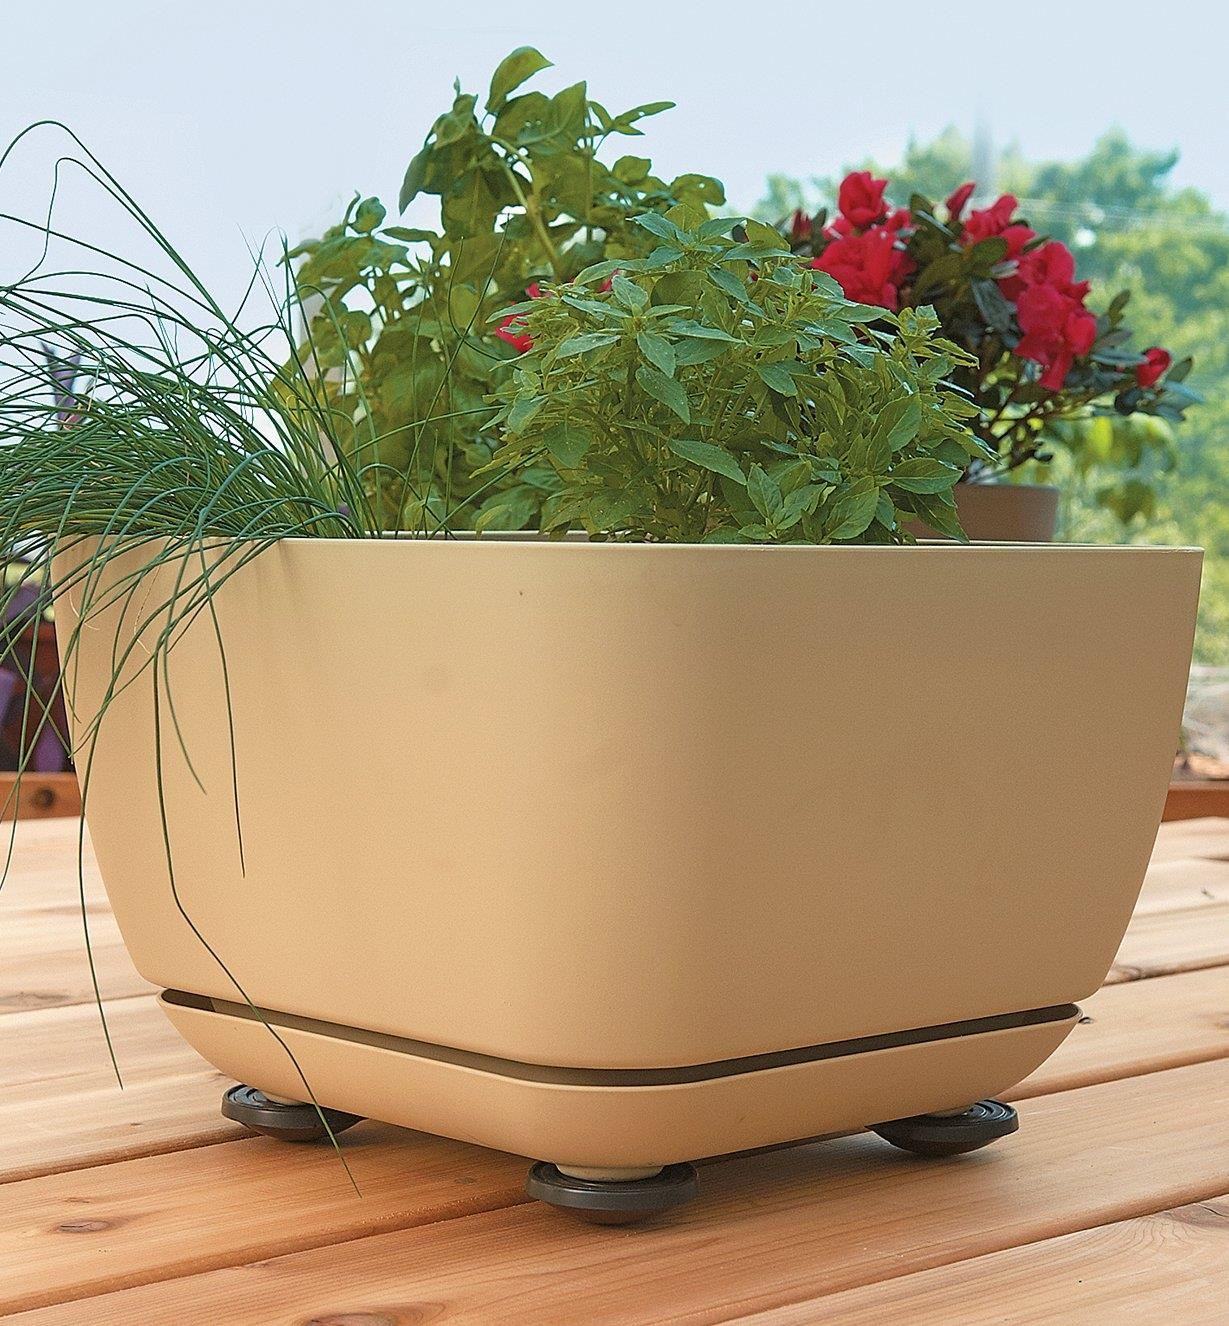 Four pot pads supporting a large planter on a wooden deck